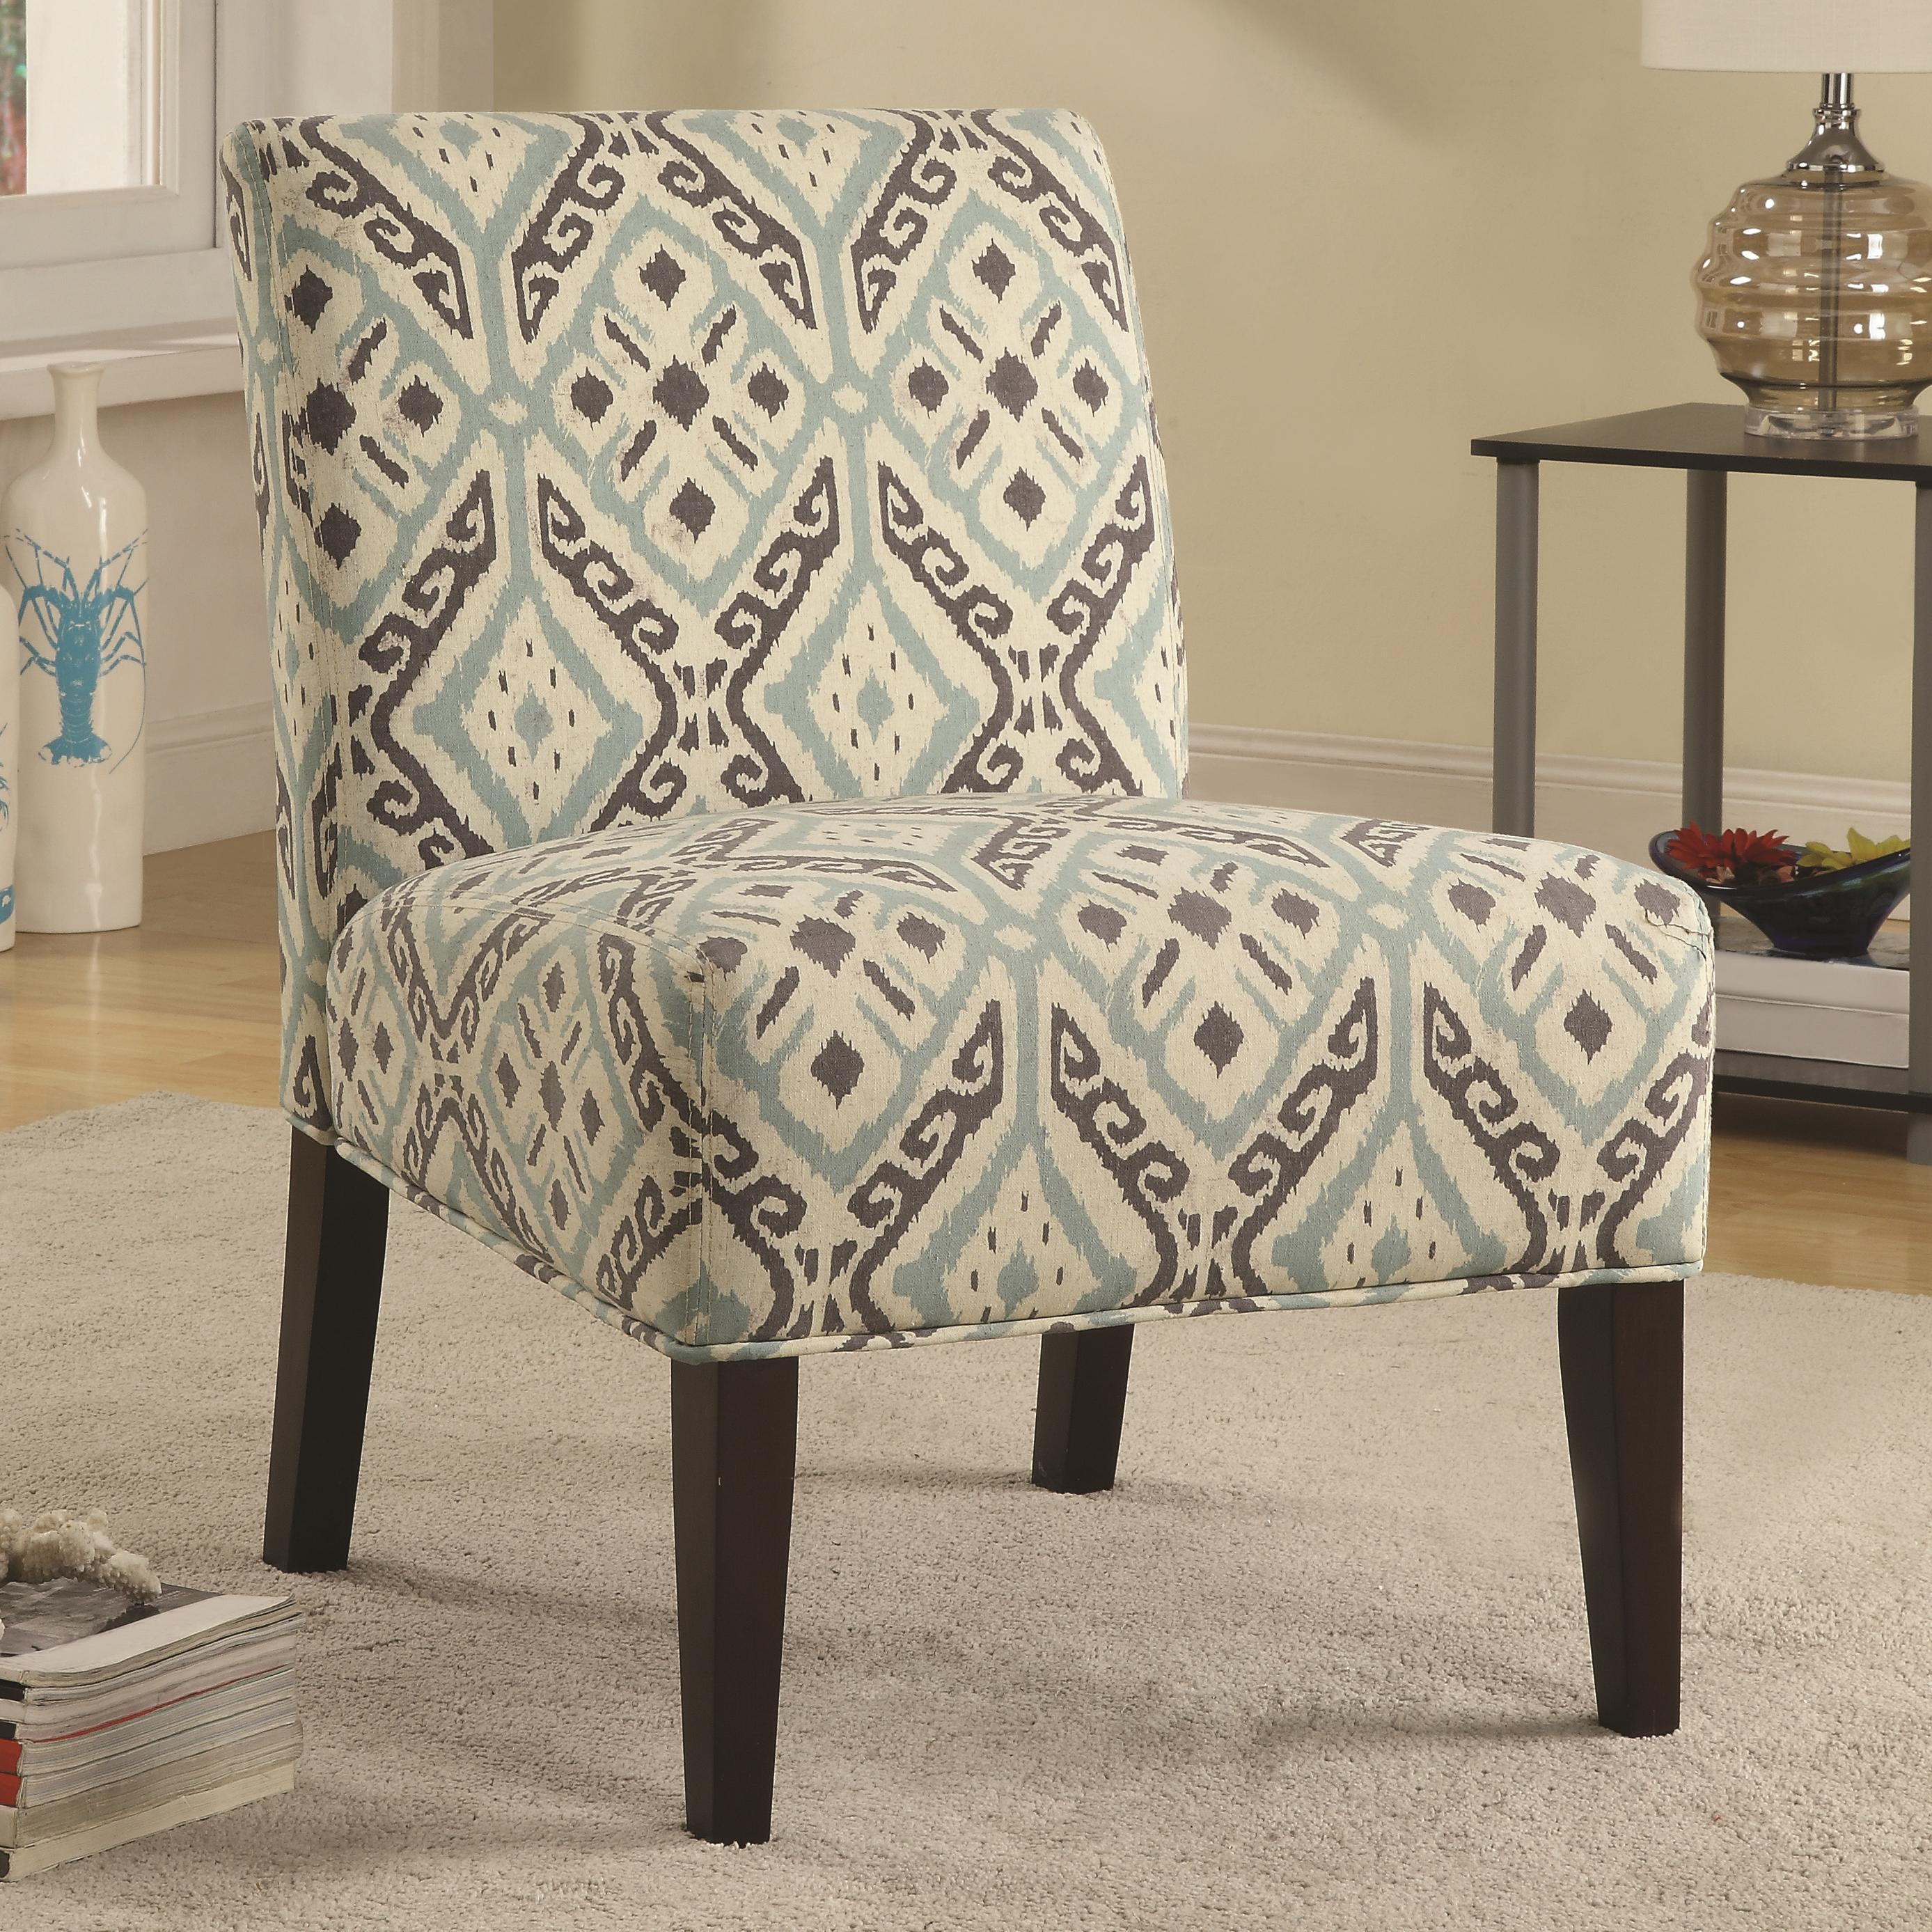 Accent Seating Accent Seating Chair by Coaster at Lapeer Furniture & Mattress Center